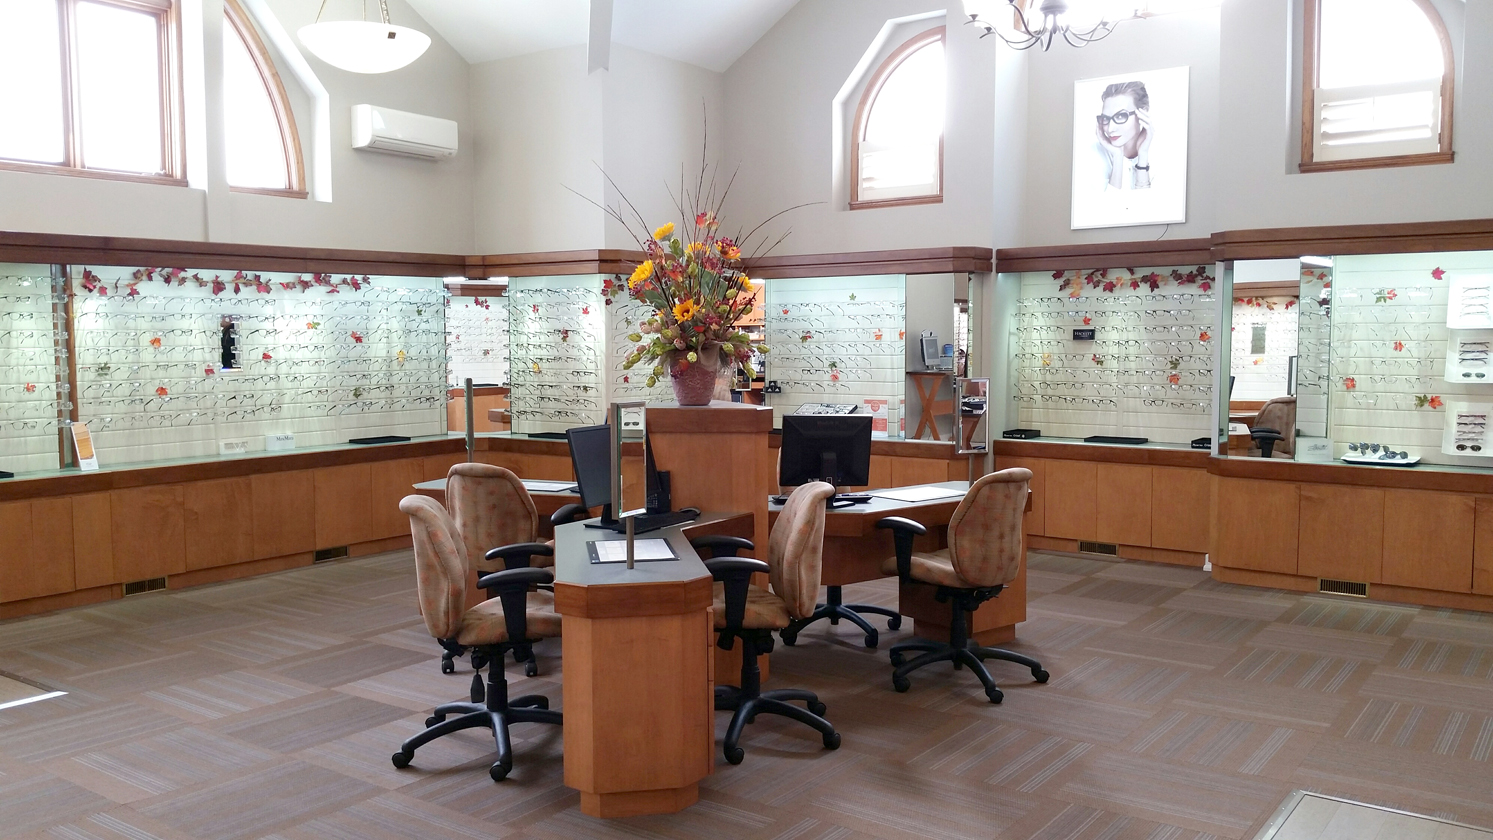 Superieur Veteran Orangeville, Ontario Optometrist Dr. Jack DiBerardinou0027s Approach To Office  Design Takes A Different Approach, With A Focus On The Patient And ...